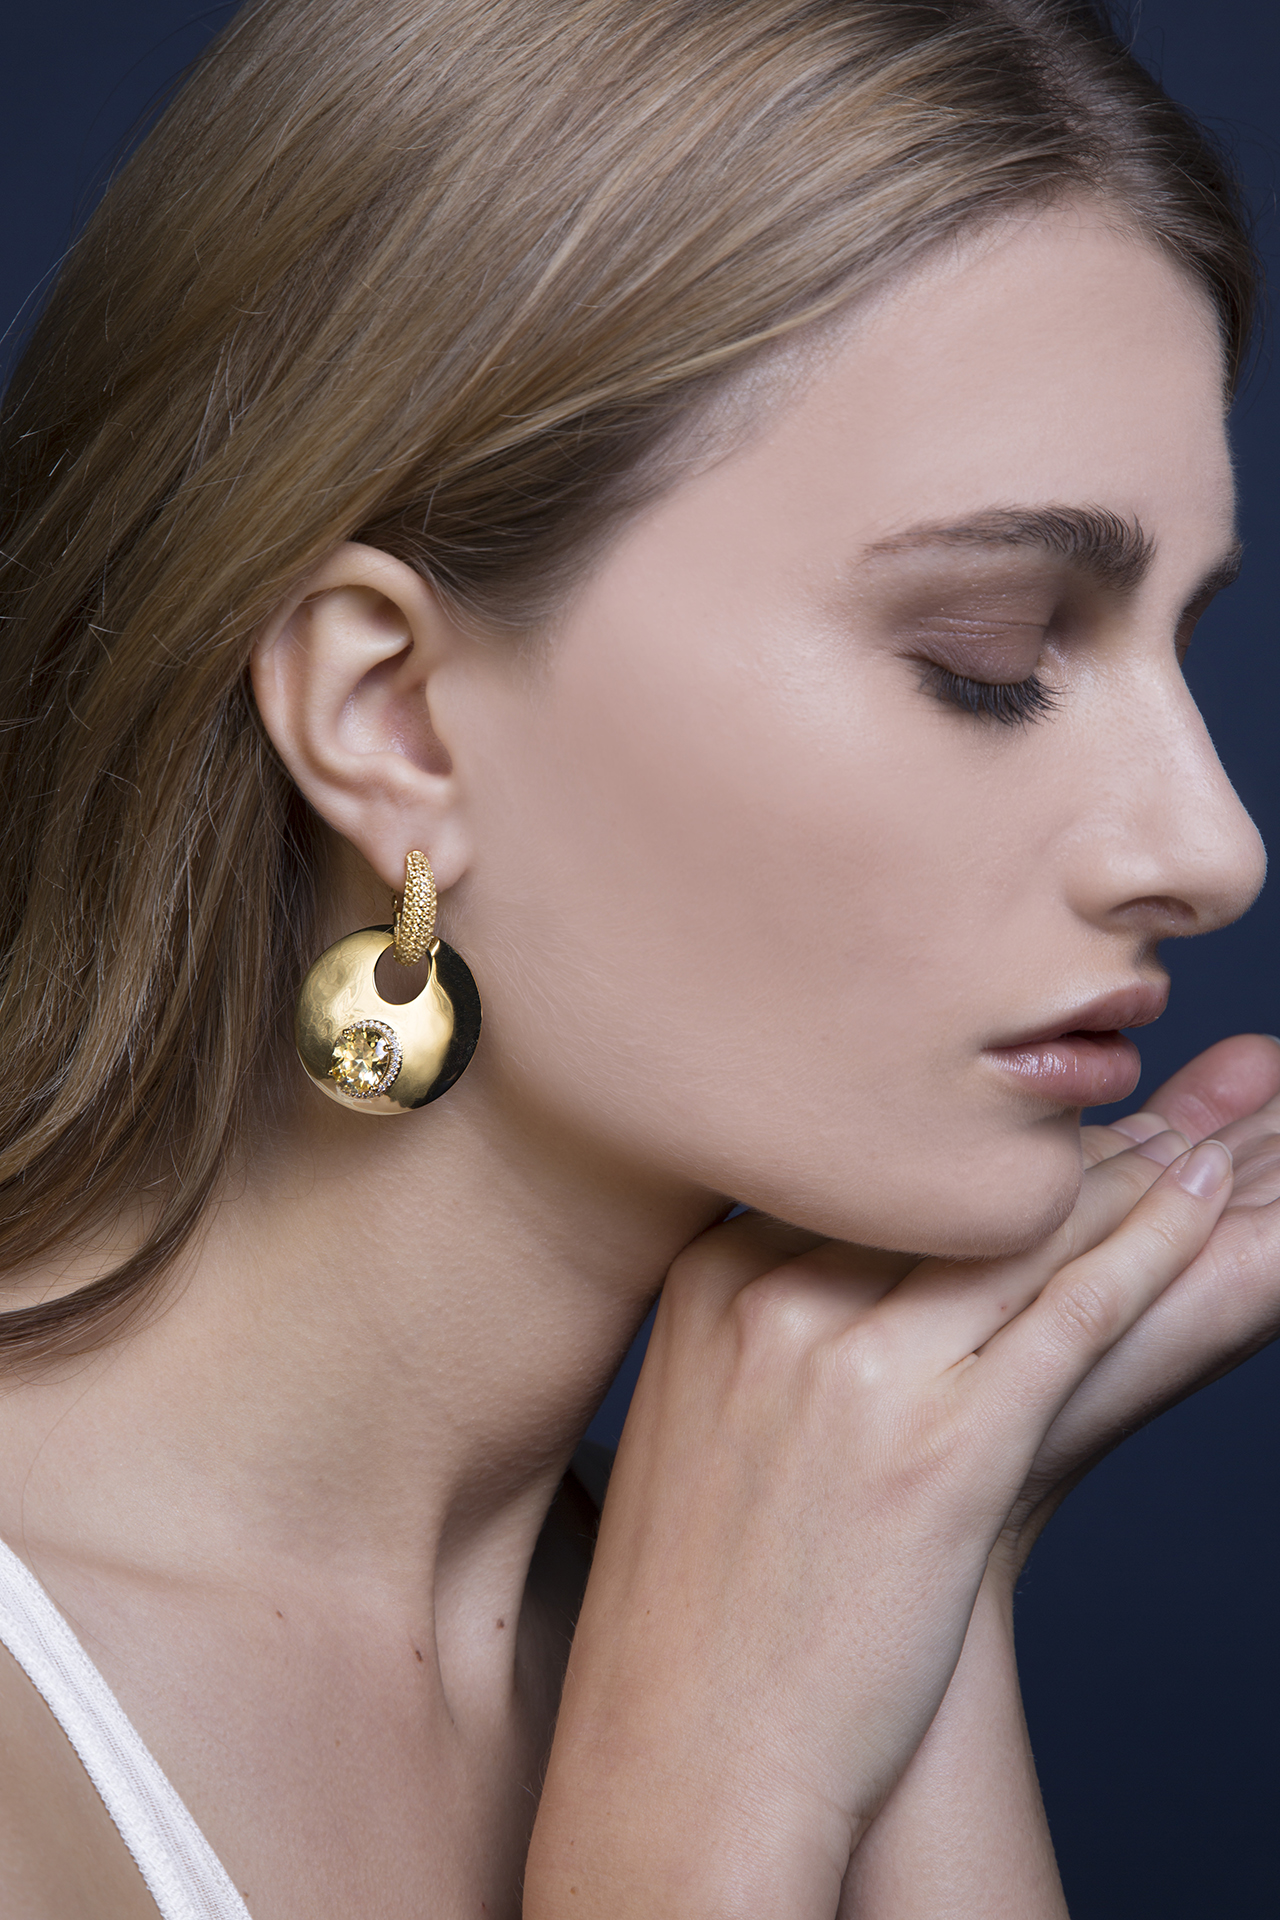 Folie Gold Earrings Lara Heems